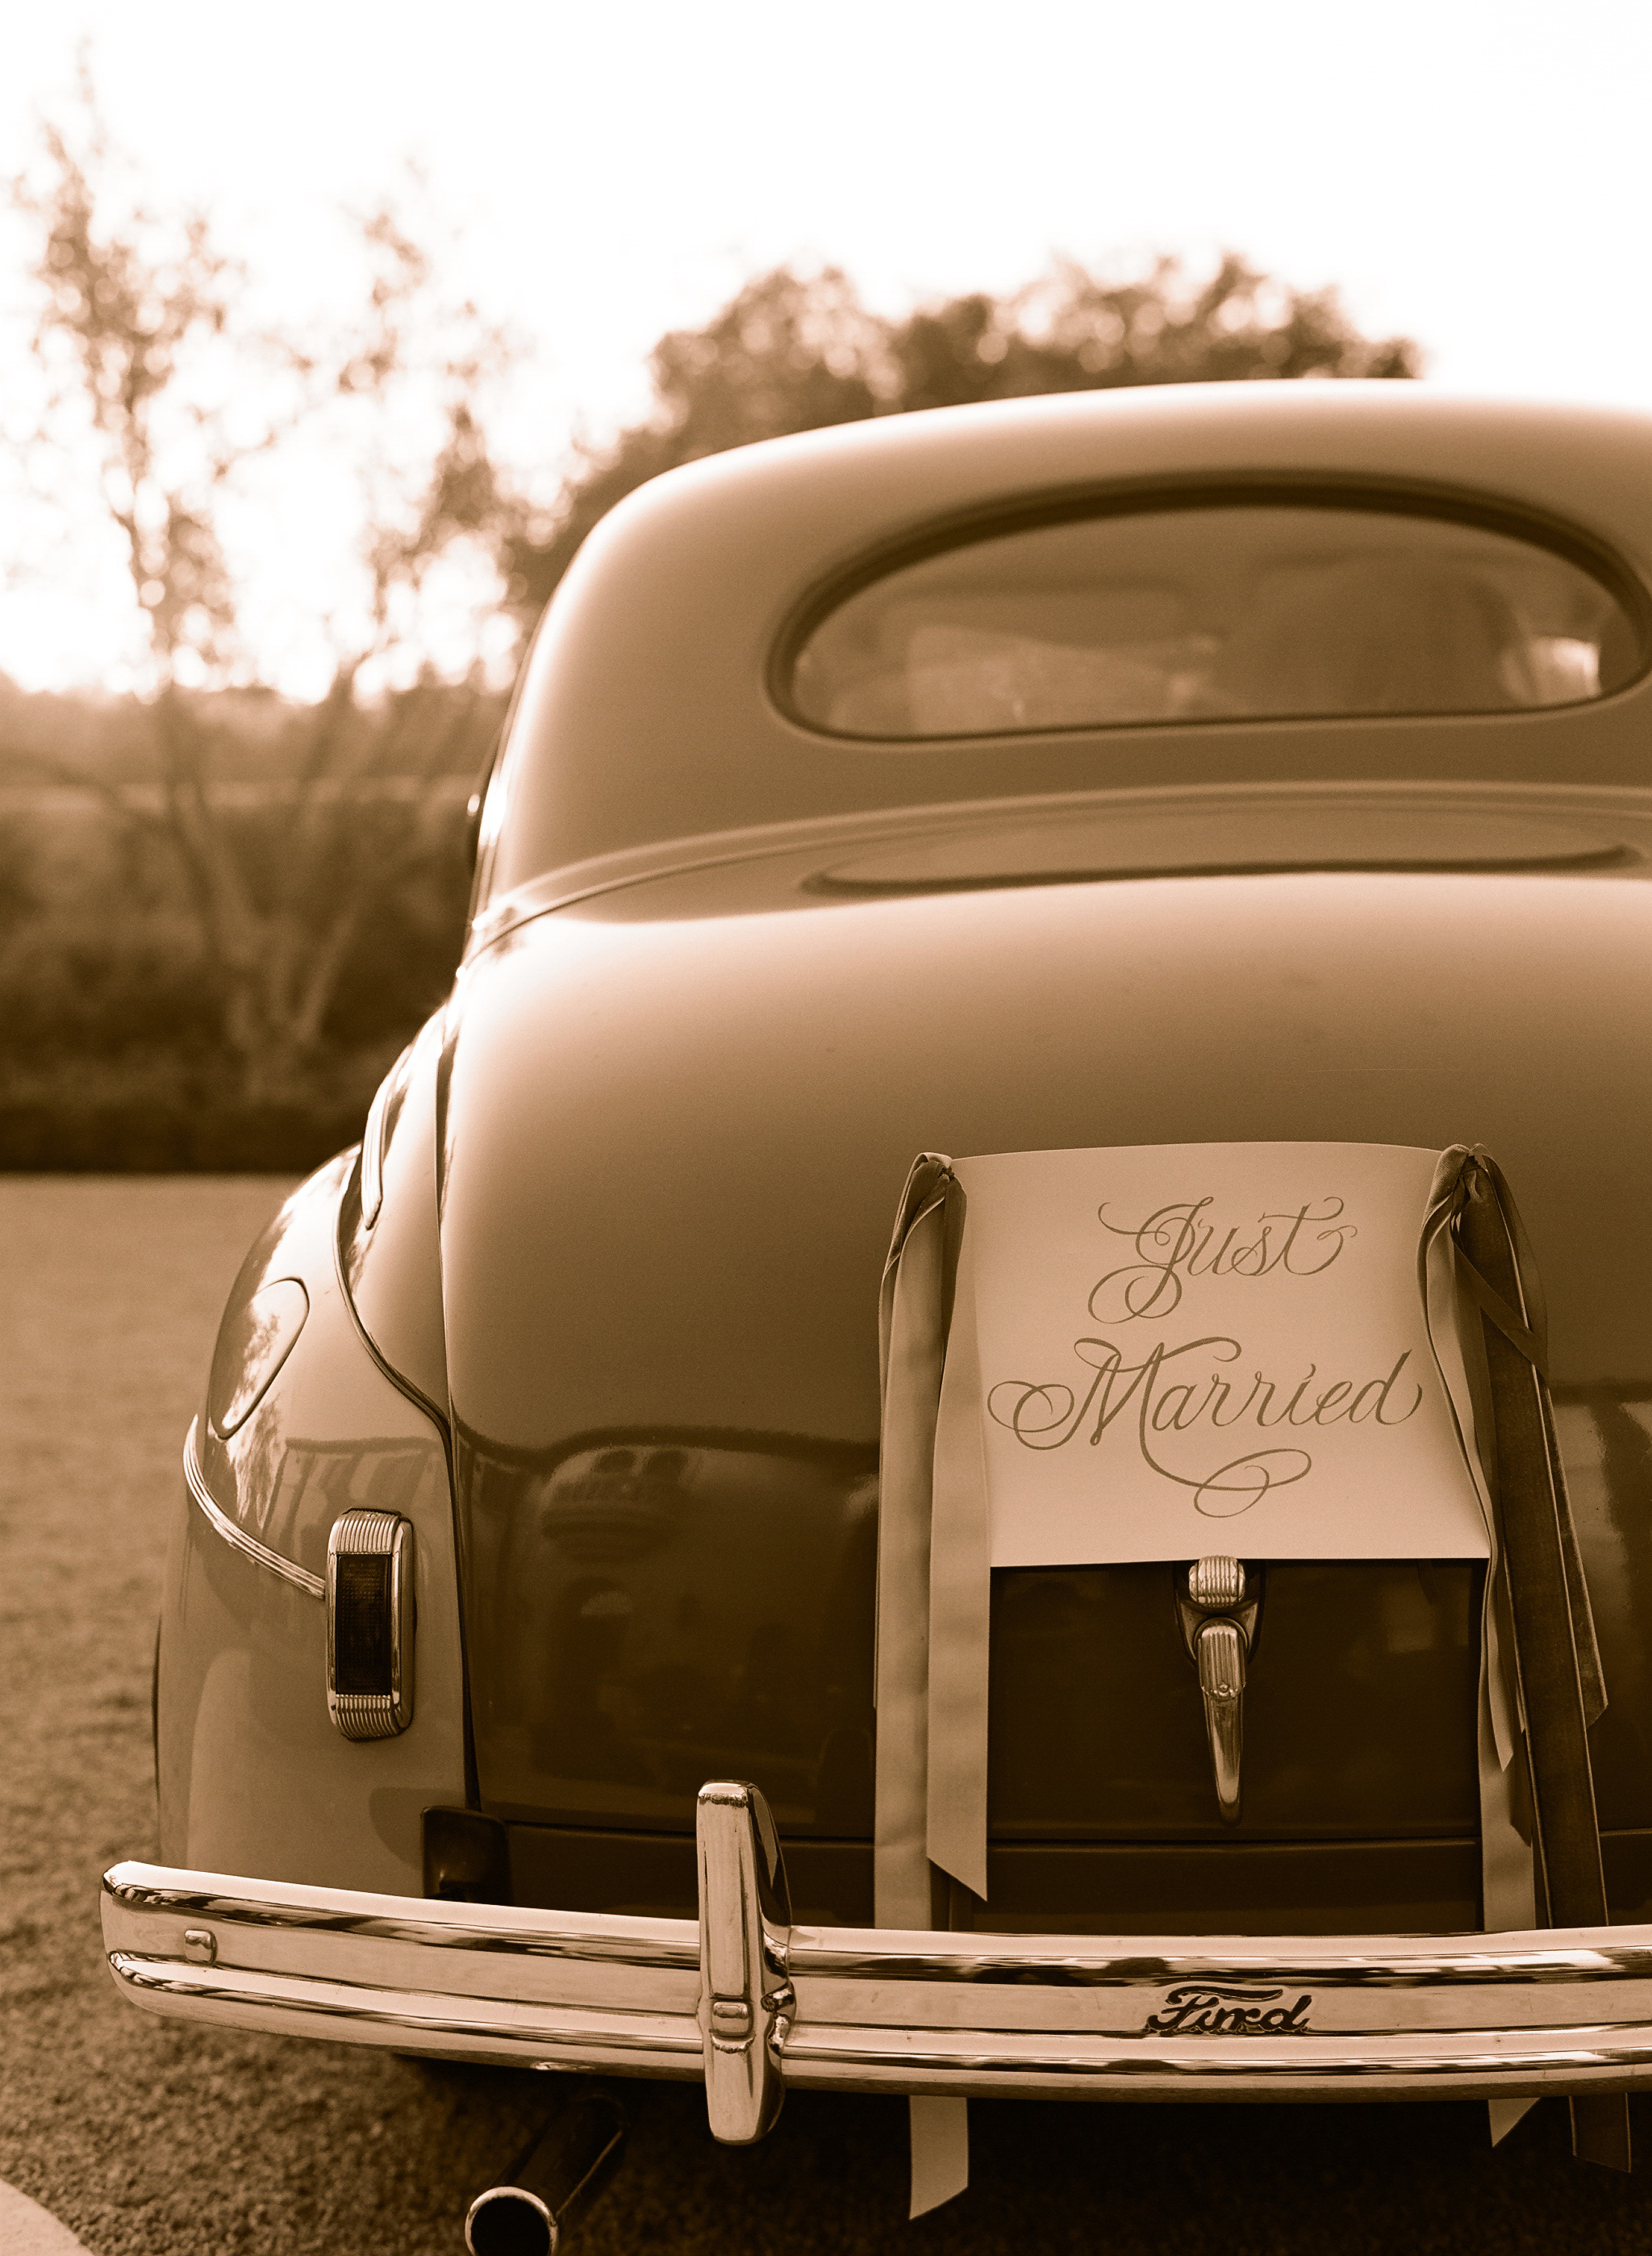 Vintage, Wedding, Car, Married, Elizabeth, Just, Valley, Ojai, Messina